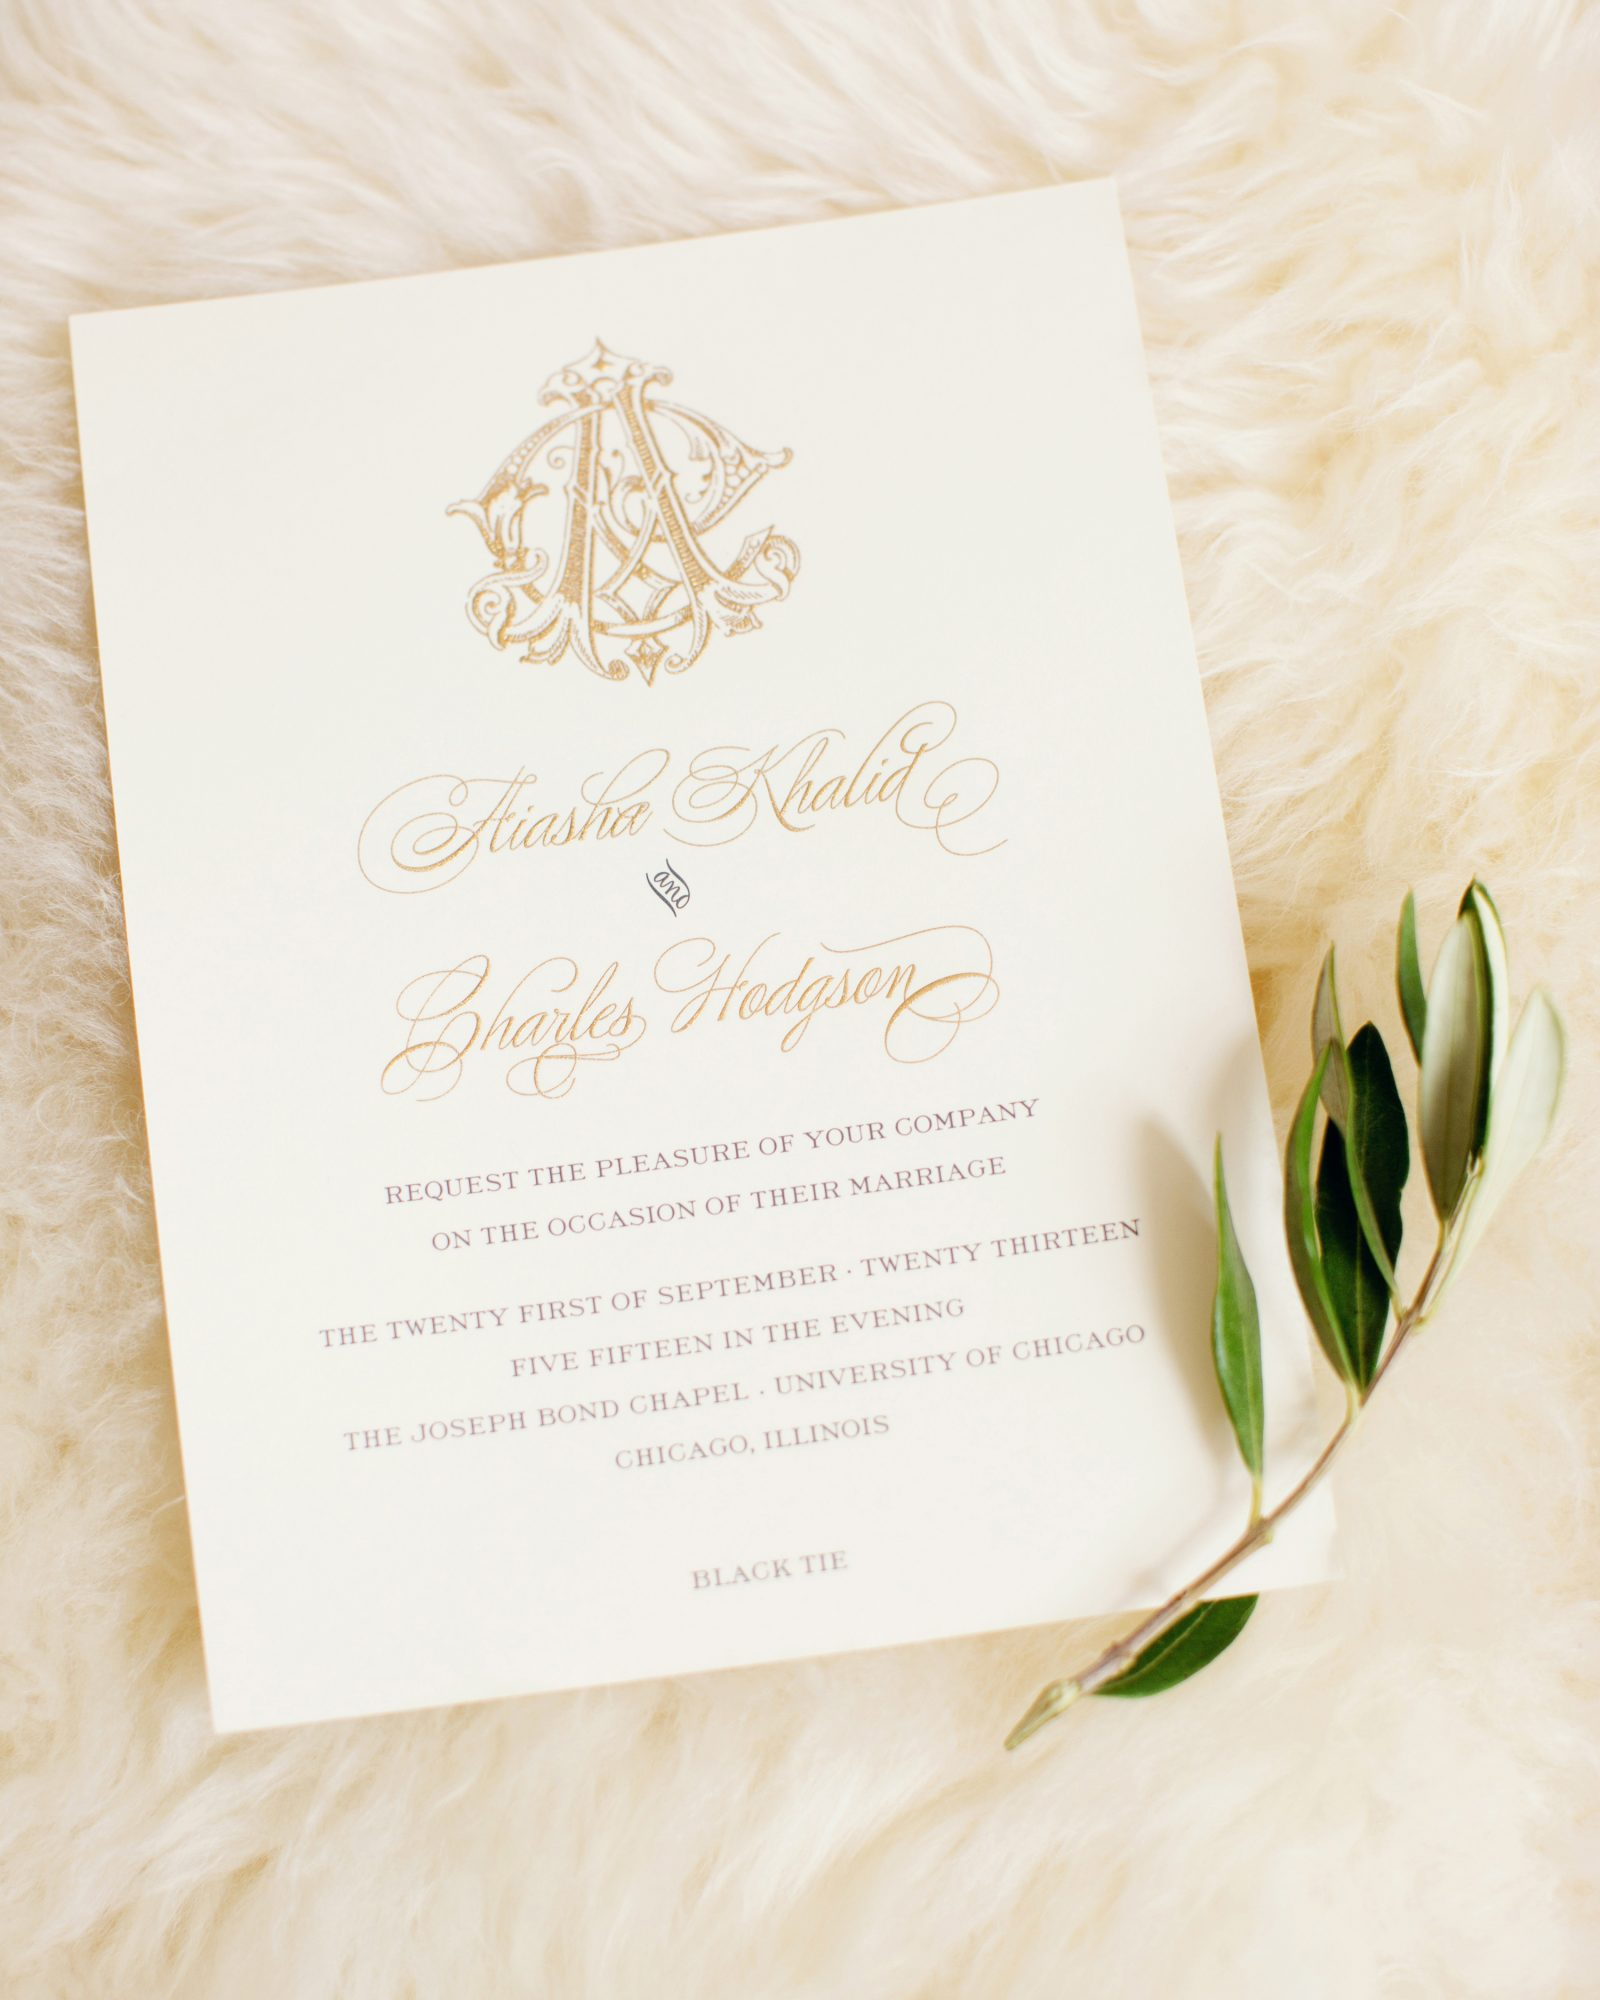 aiasha-charles-wedding-invite-0514.jpg